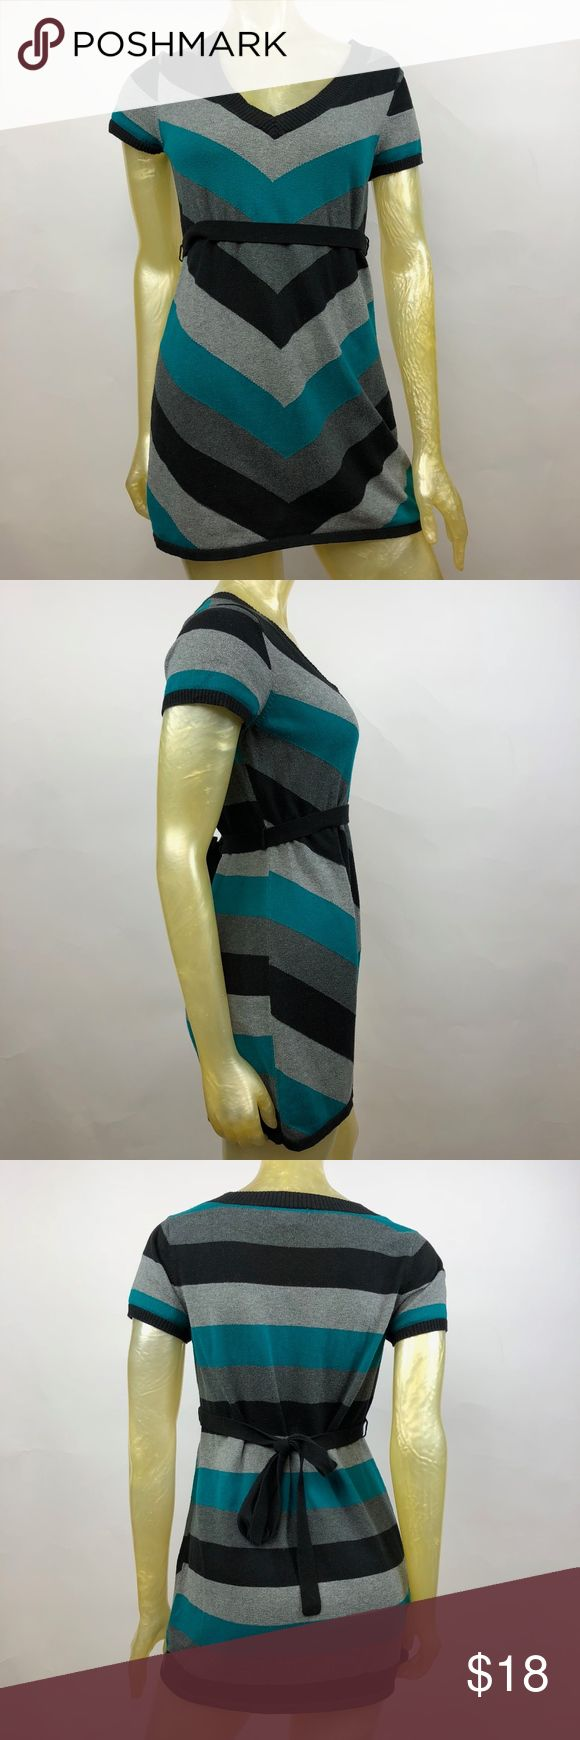 """Two Hearts Striped Knit Maternity Short Sleeve Top Posh Thrift Shop  Thanks for stopping by!!!  Item: Two Hearts Maternity Size Small S Striped Short Sleeve Knit Top Waist Tie  Condition: In good used condition.  Please refer to images for more details about this item. If you have any questions please feel free to ask. All measurements are taken with the item laying and are approximate.   Armpit to Armpit: 19""""  Shoulder to Hem: 30"""" Two Hearts Maternity Tops"""